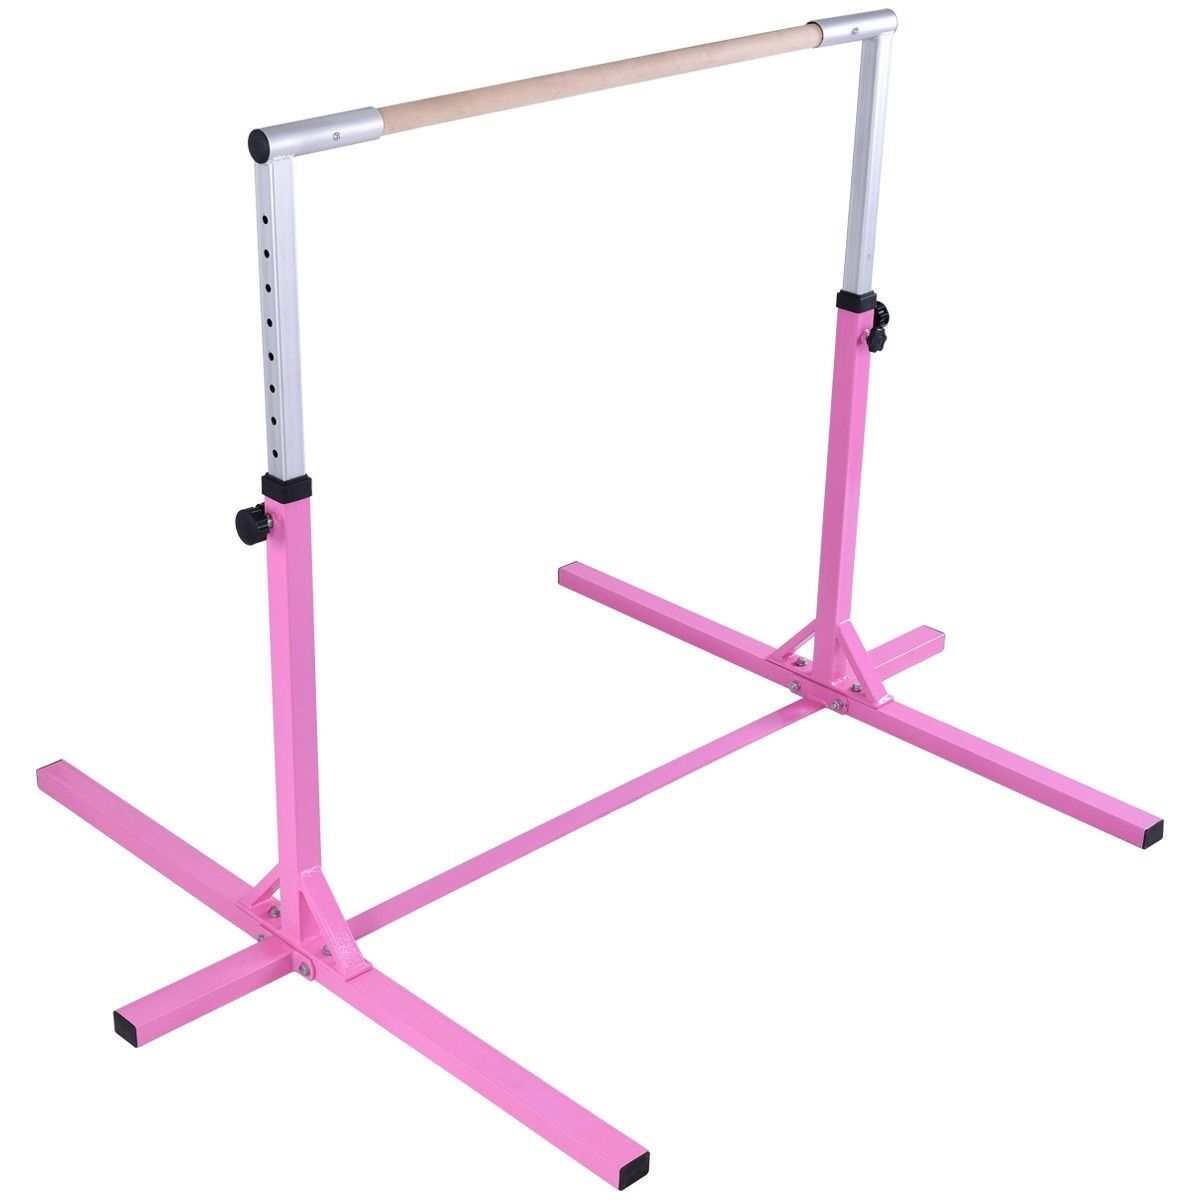 Gymnastics  Junior Training Bar with Adjustable Horizontal Kip Bar for Kids Pink  sale online save 70%